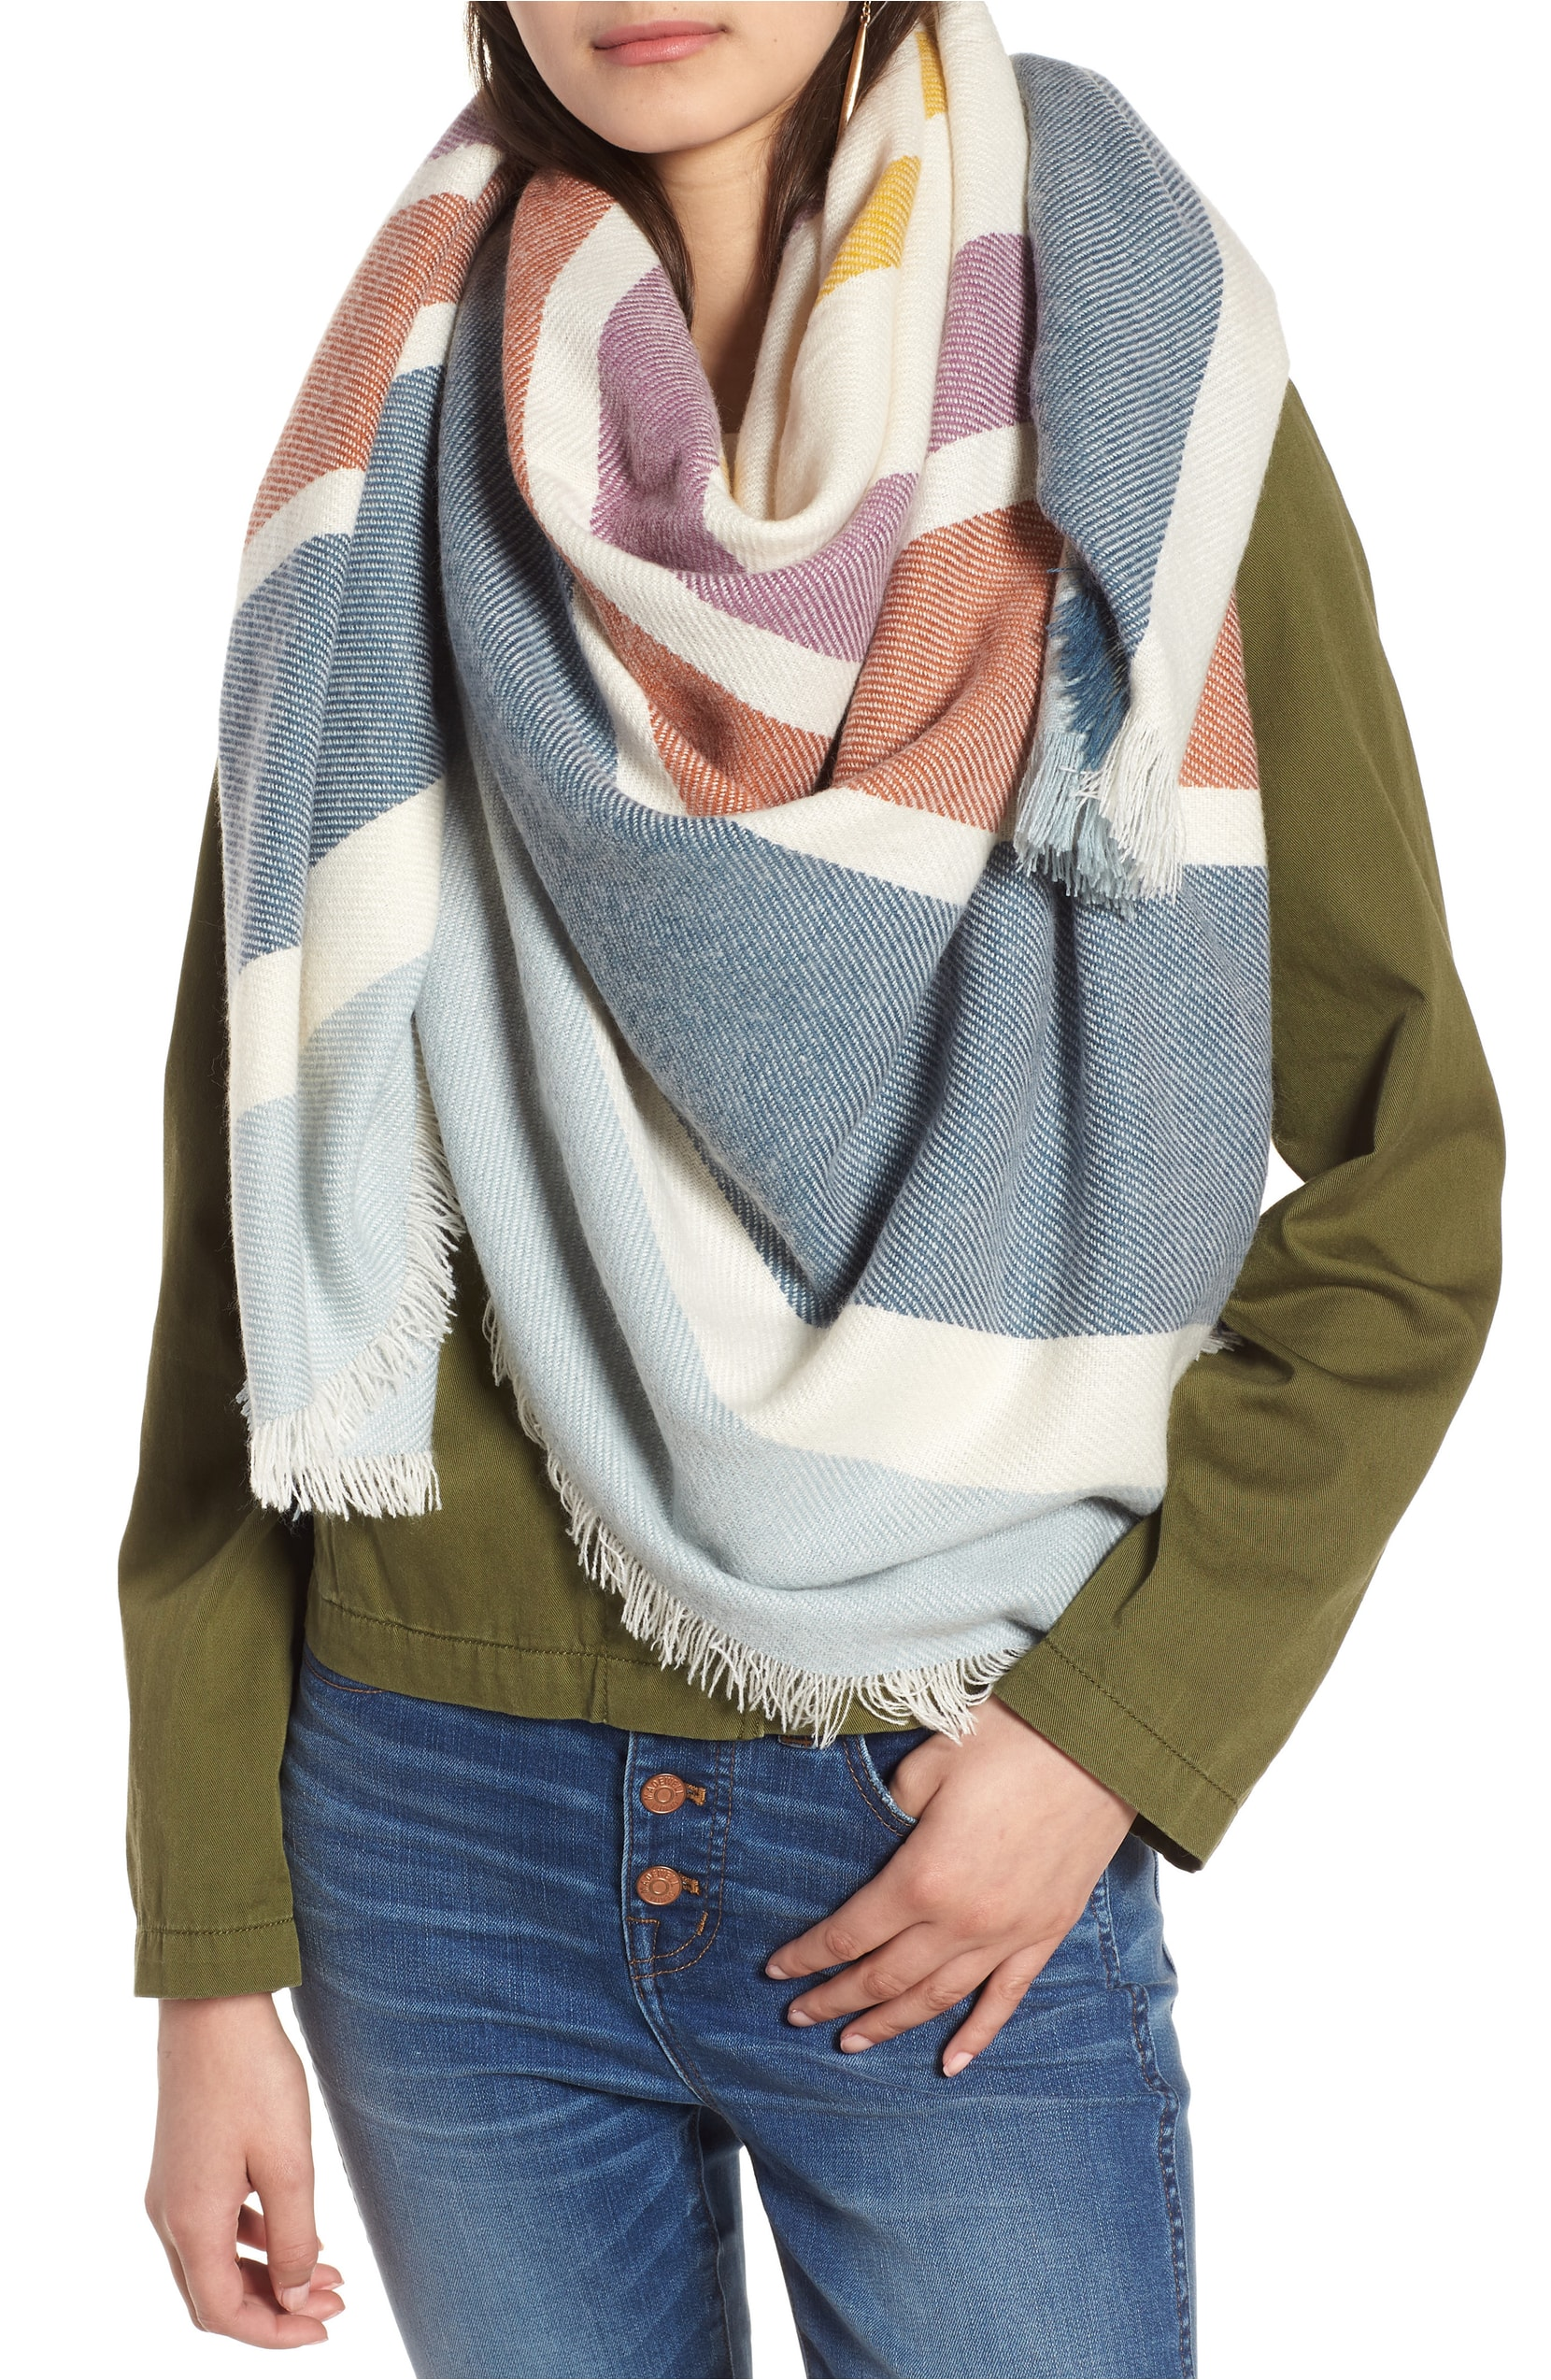 Stripe Blanket Scarf. Sale: $35.90 / After Sale: $55.00. (Image: Nordstrom){ }